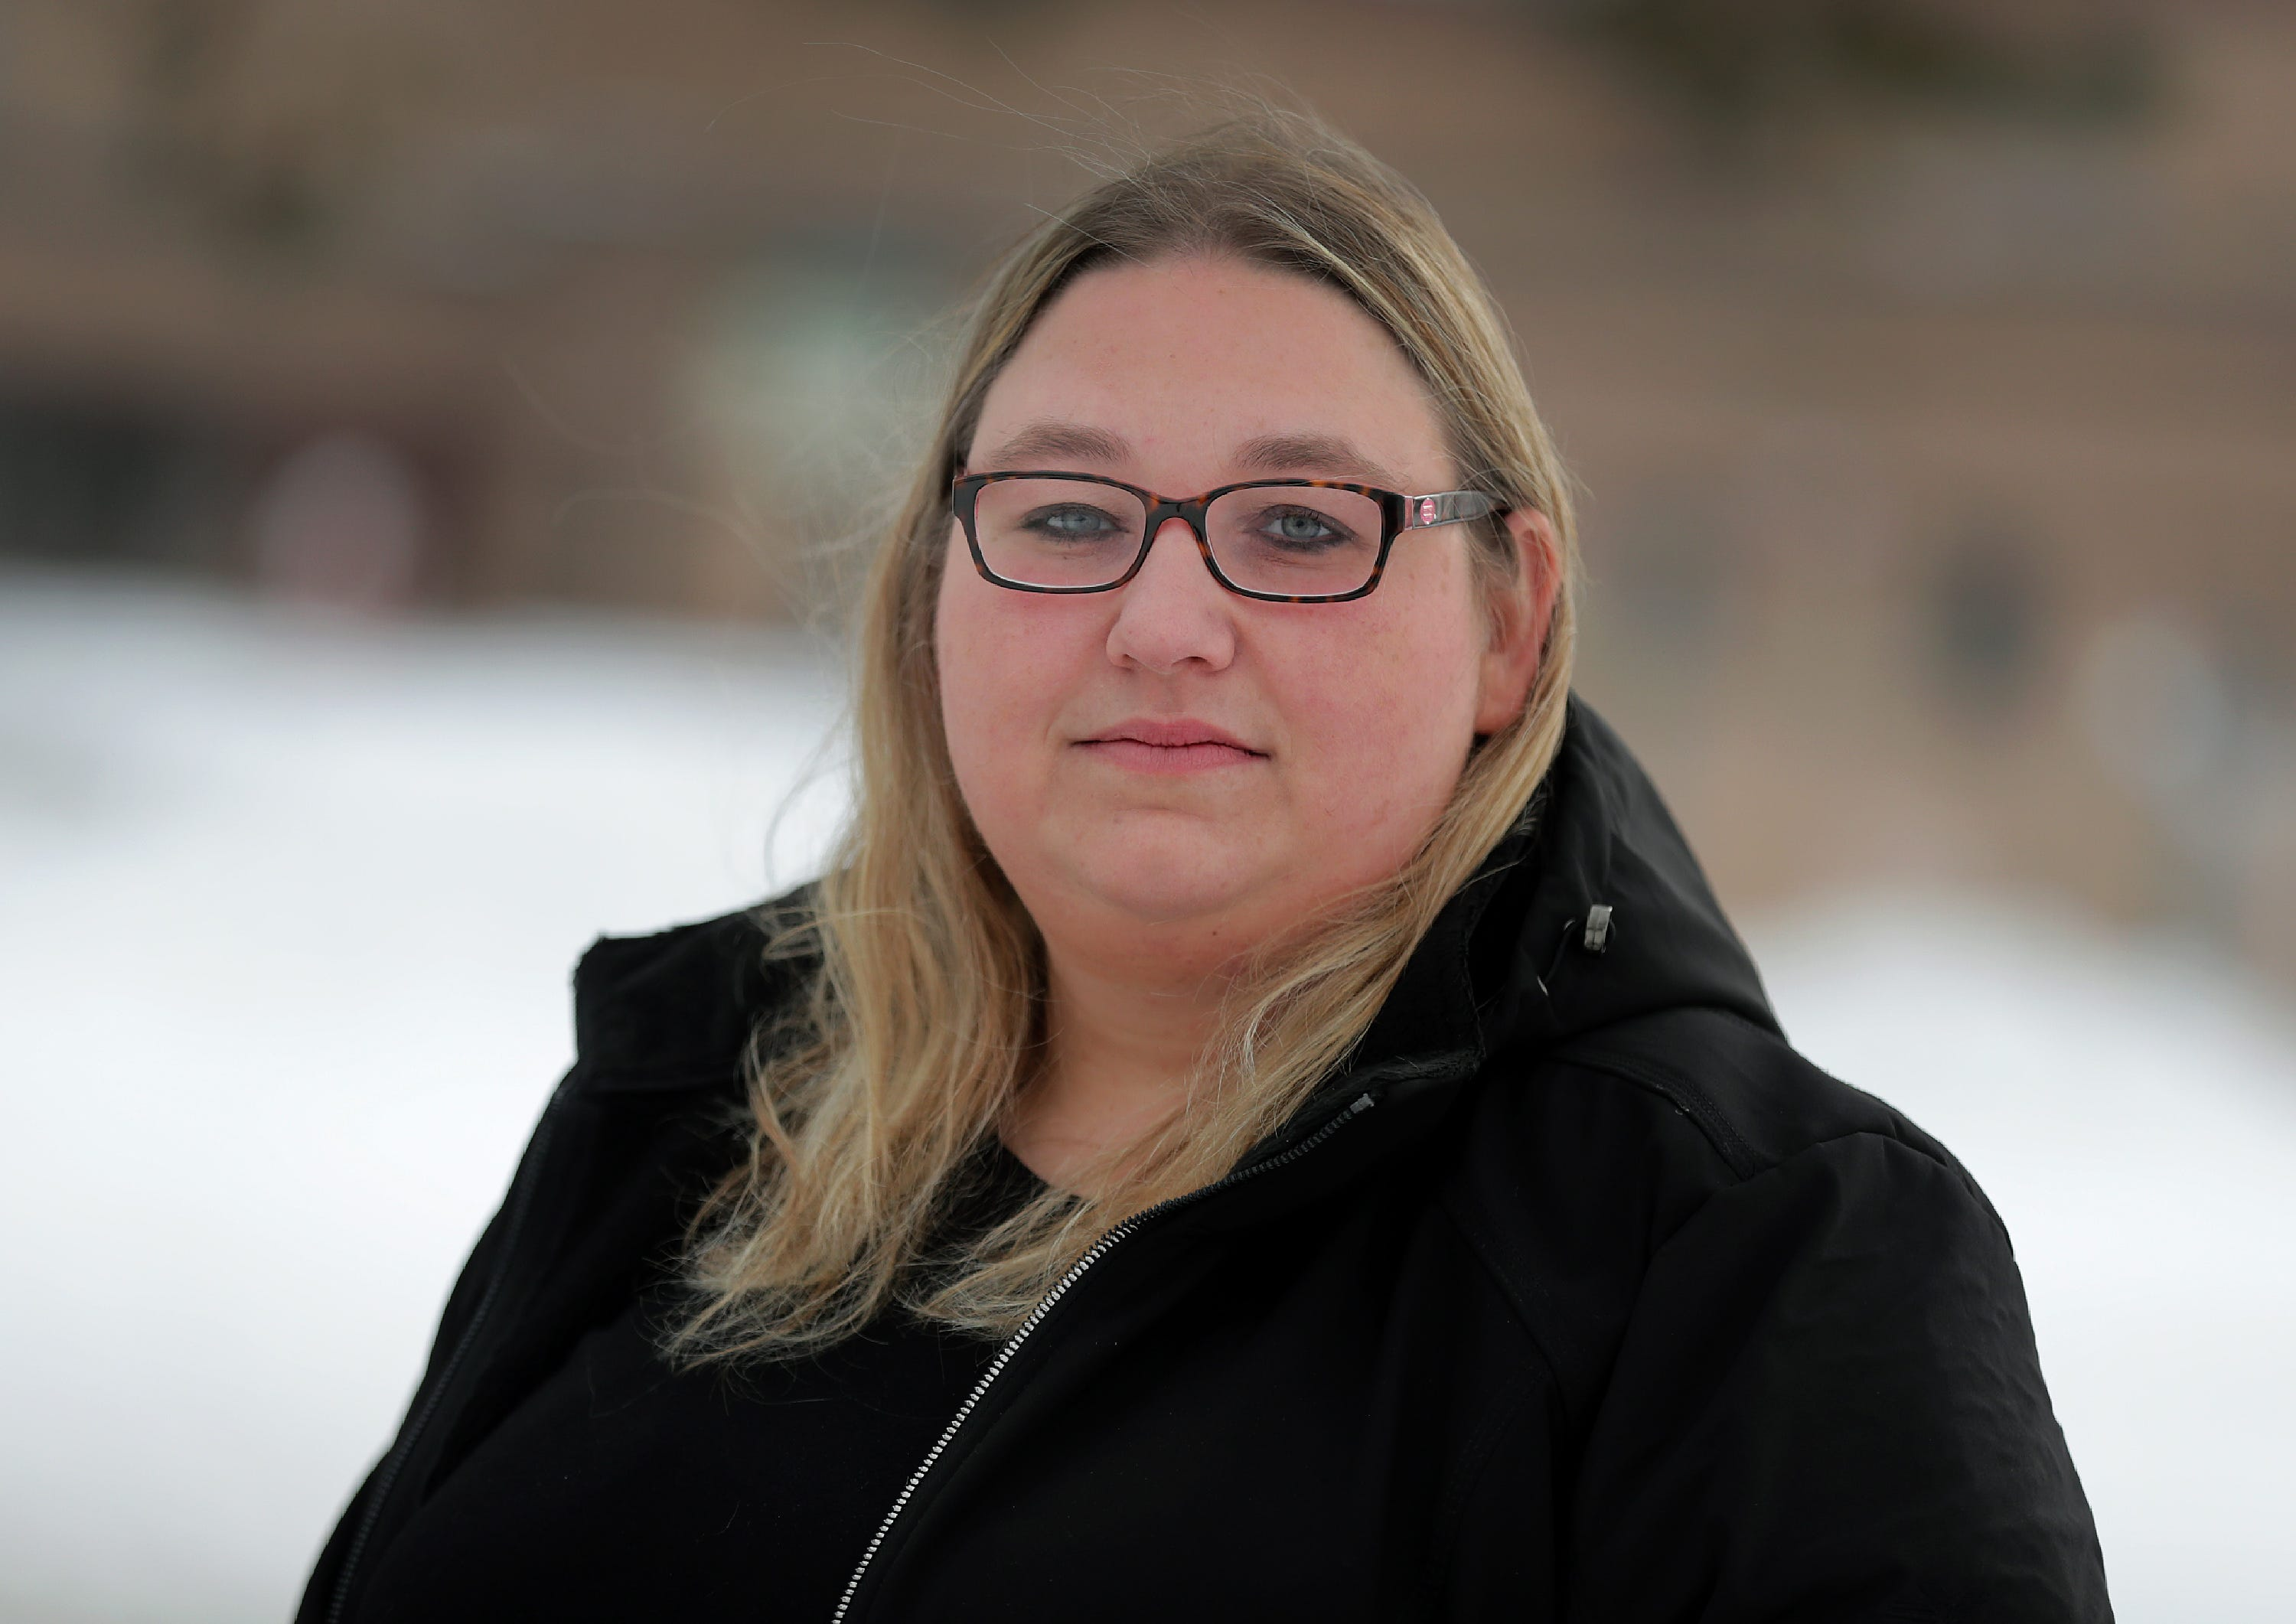 Amber McGinley, photographed Jan. 22, has concerns with the Appleton Area School District's use of seclusion and restraint. Her son, a third grader at Ferber Elementary, was secluded and restrained more than 20 times by the end of second grade.